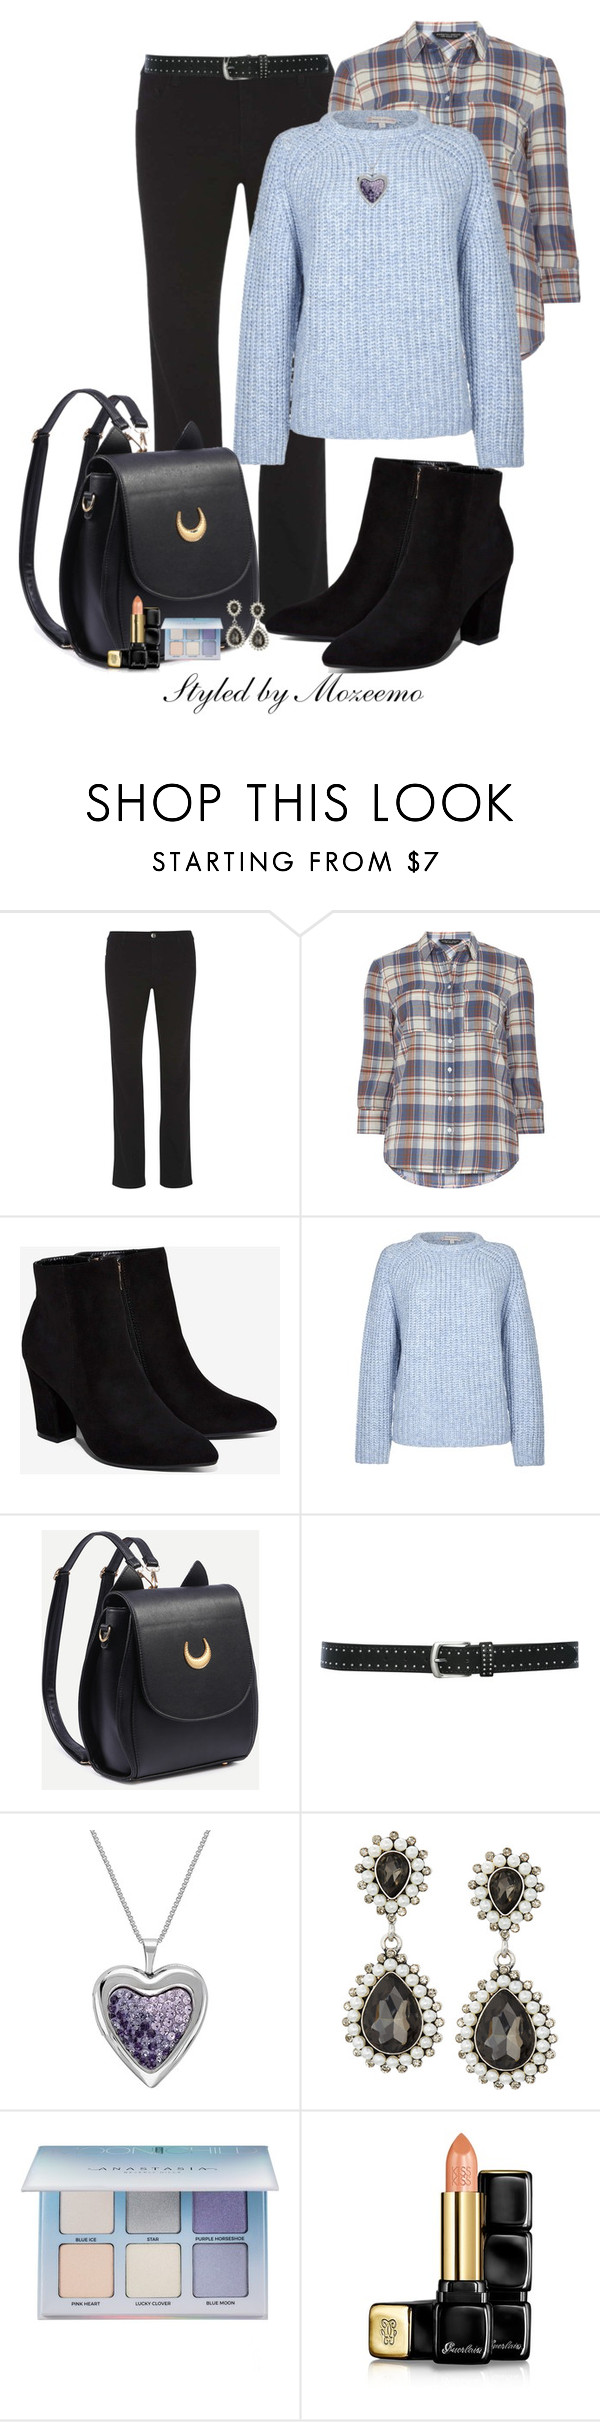 """""""Jeans Outfit"""" by mozeemo ❤ liked on Polyvore featuring Dorothy Perkins, Billini, Paul & Joe Sister, M&Co, Emily & Ashley, Anastasia Beverly Hills and Guerlain"""